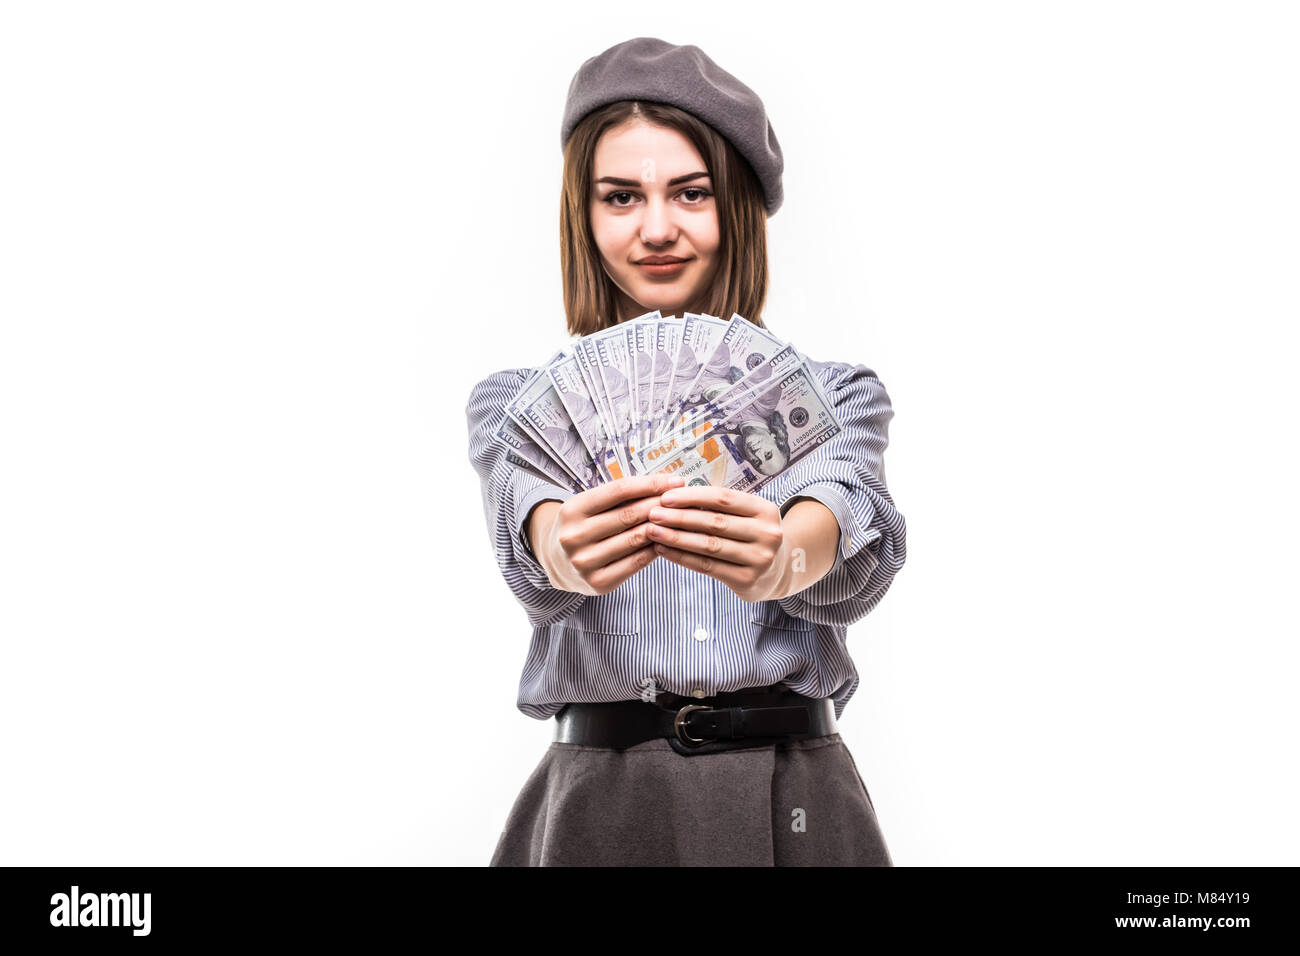 Image of successful woman having french style covering face with fan of money dollar currency isolated over white - Stock Image